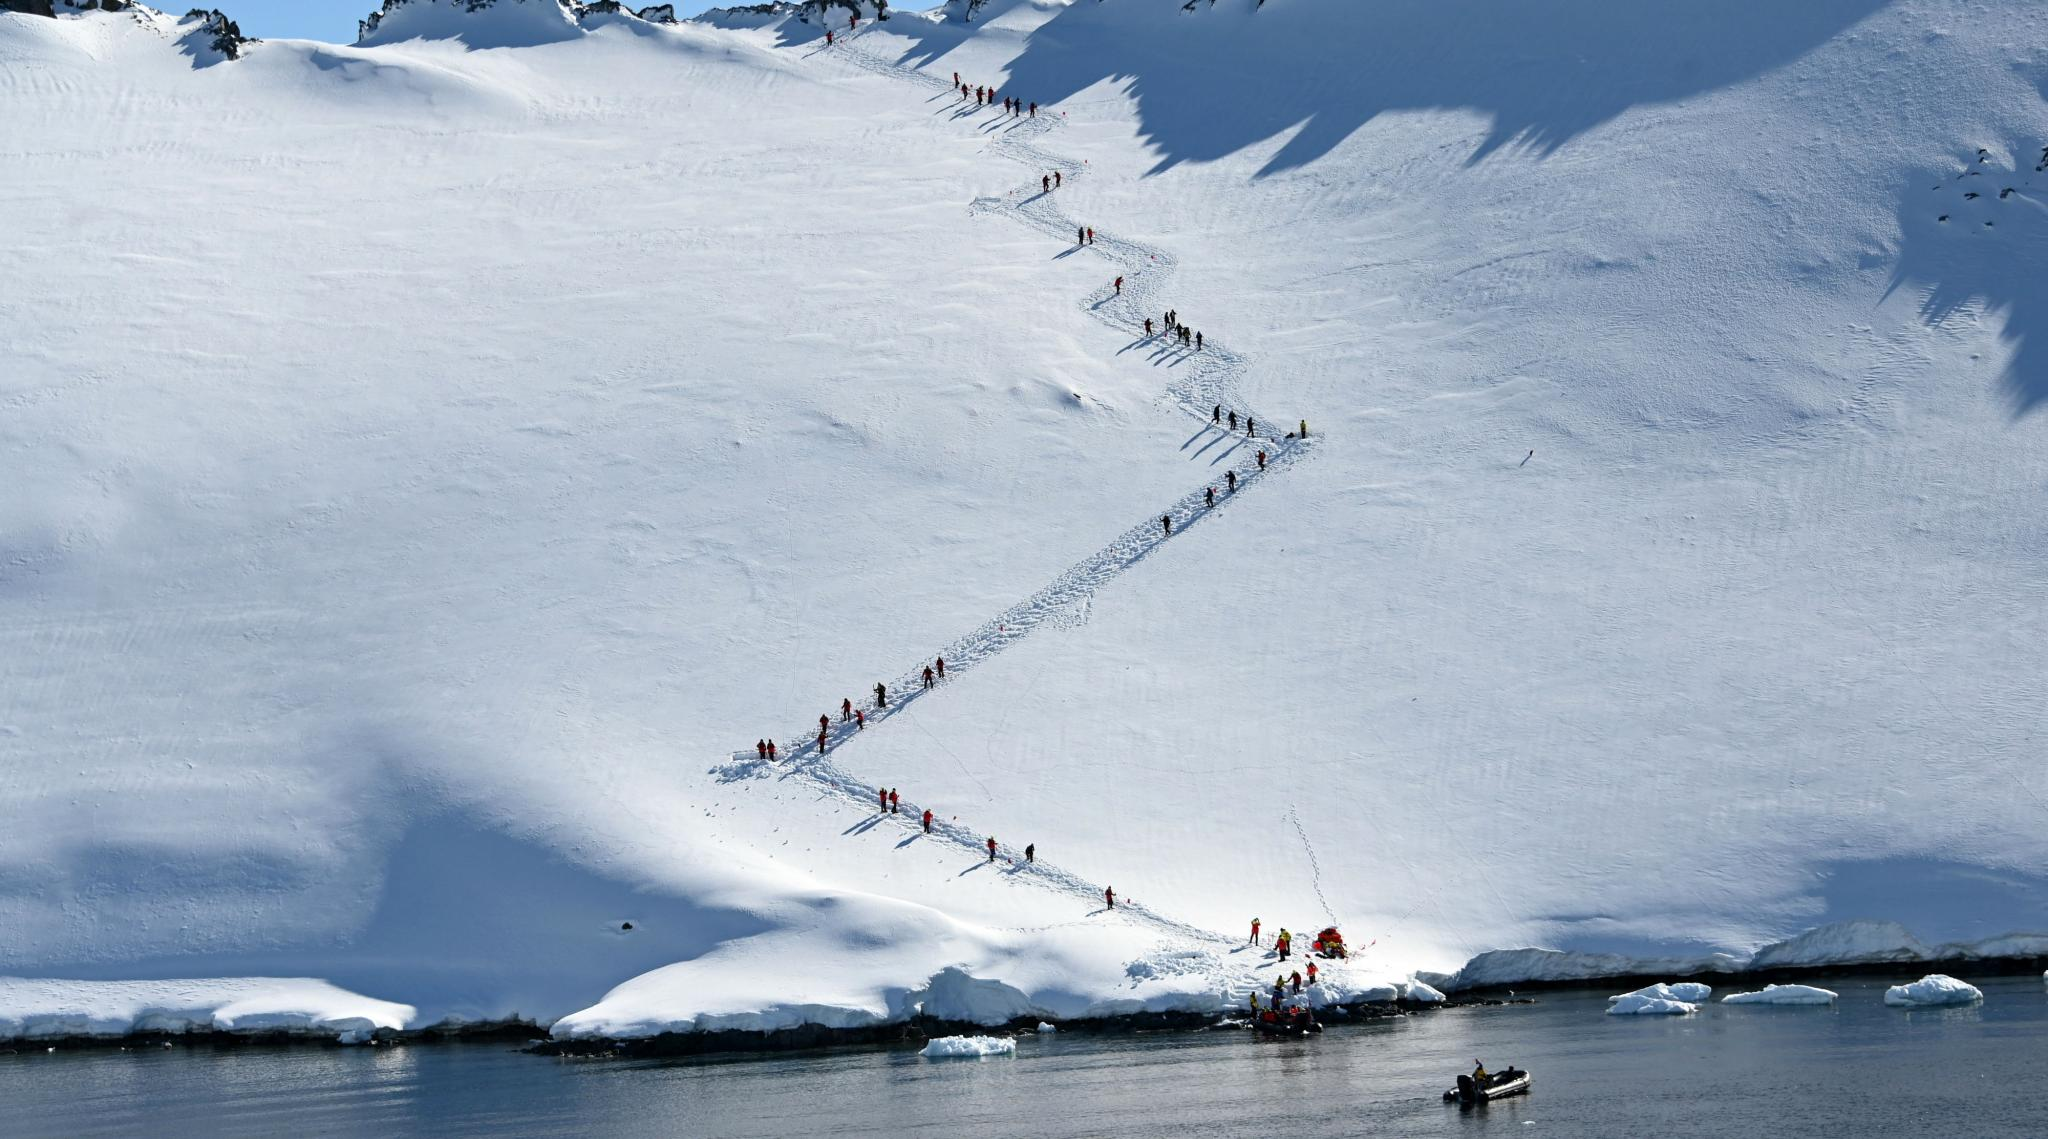 Antartica's Tour Operators Police Themselves, One Among Unique Rules of The Continent